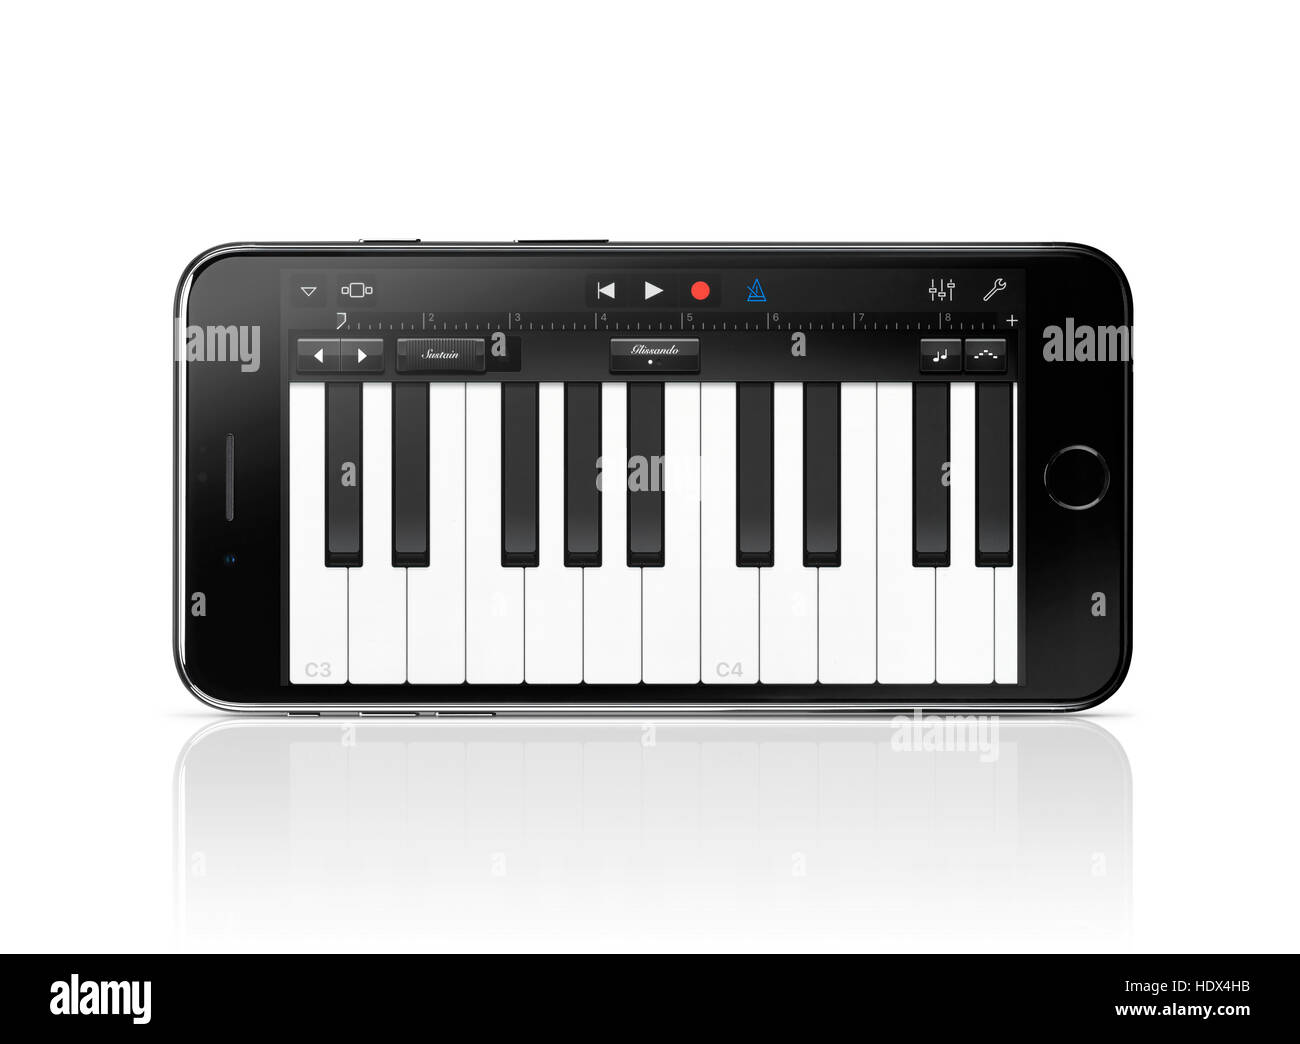 Apple iPhone 7 Plus with piano keyboard Garage Band Apple music app on its display isolated on white background - Stock Image